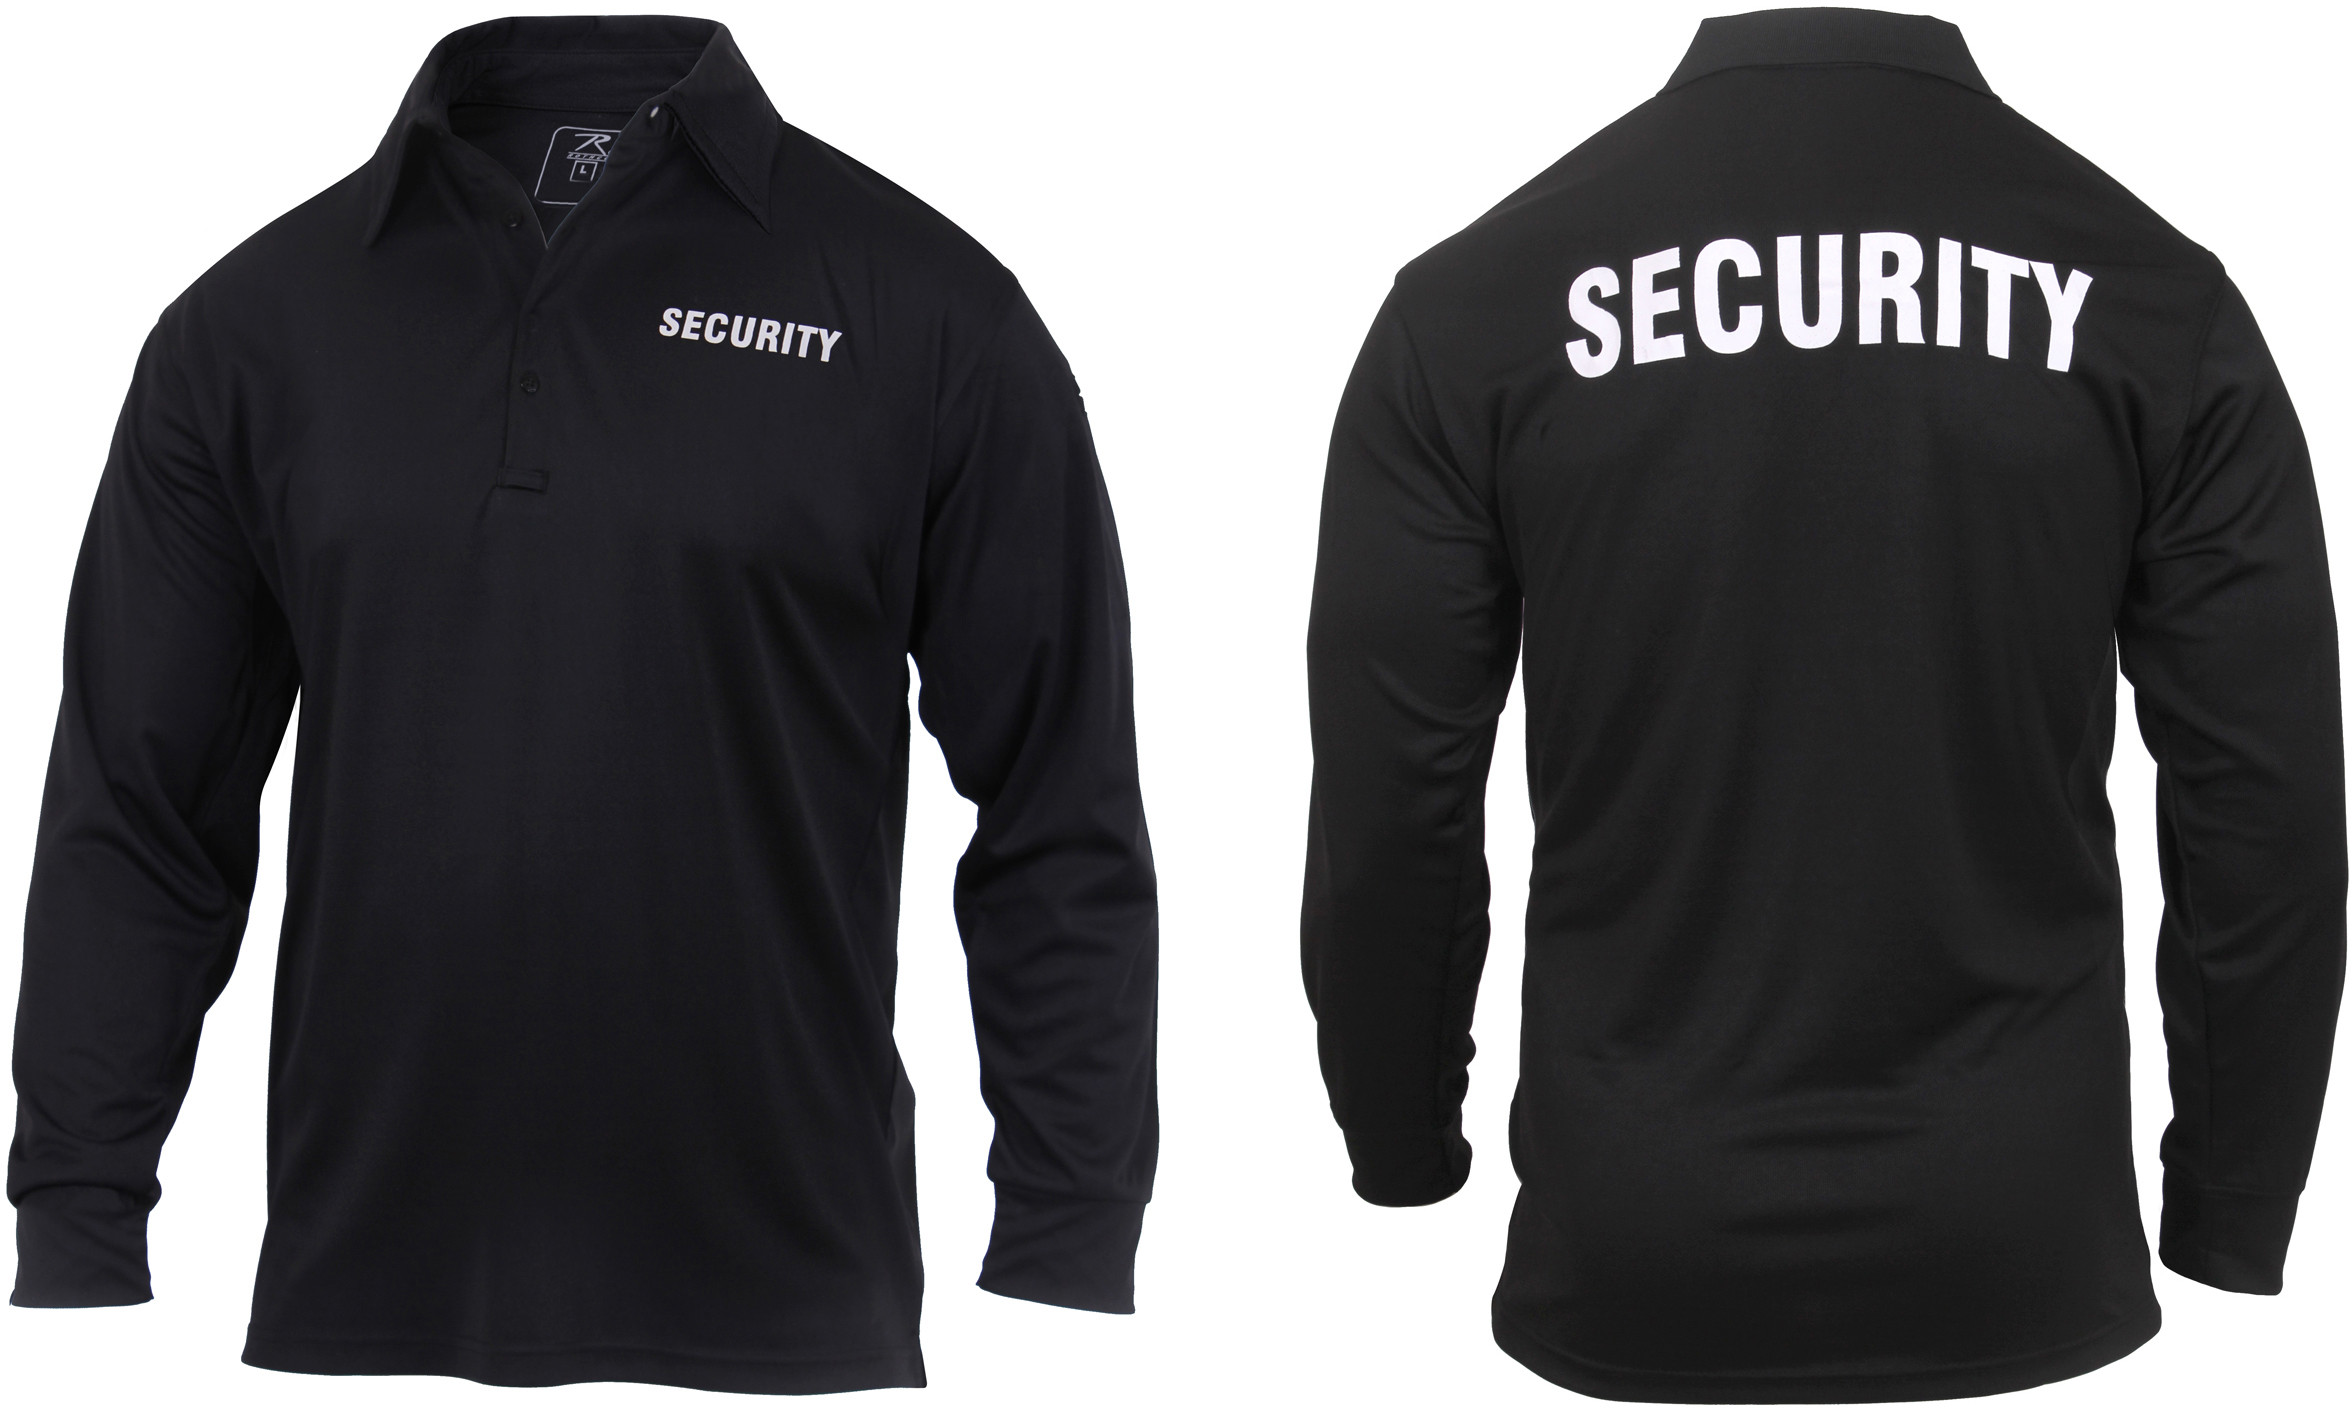 Moisture Wicking Long Sleeve Security Polo c70977afa0f